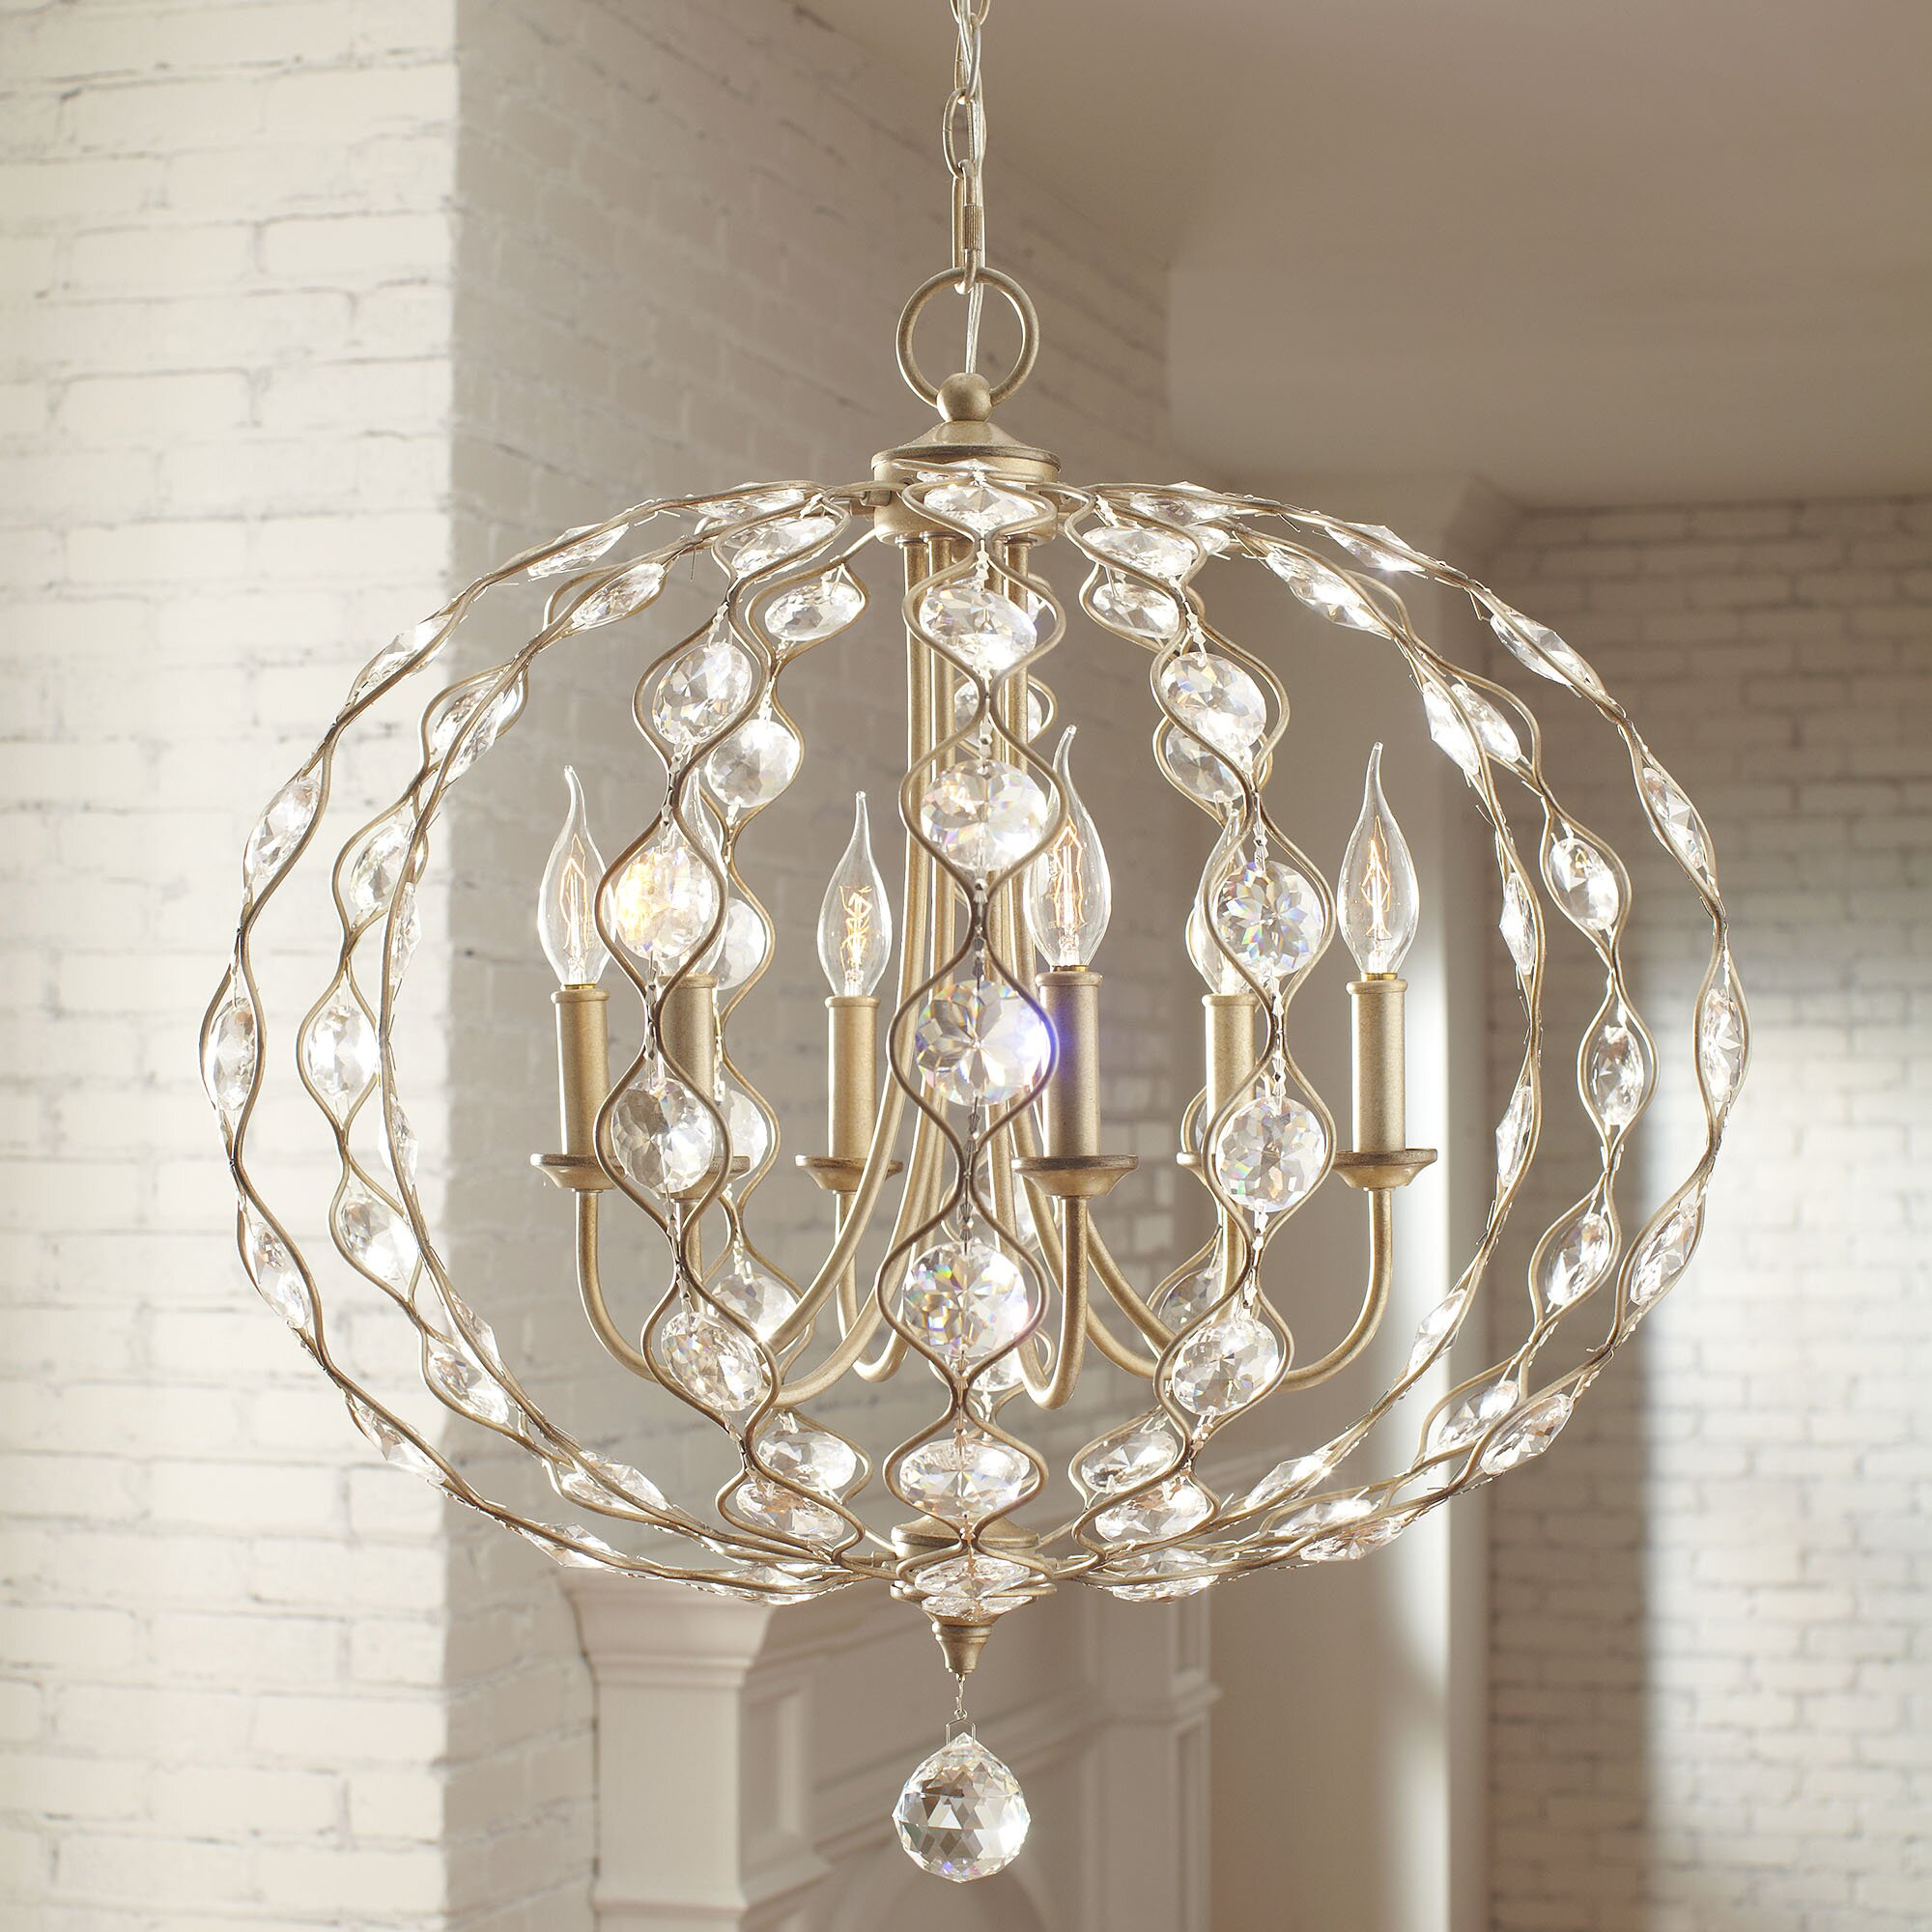 Wayfair Chandelier: Birch Lane Madsen Chandelier & Reviews